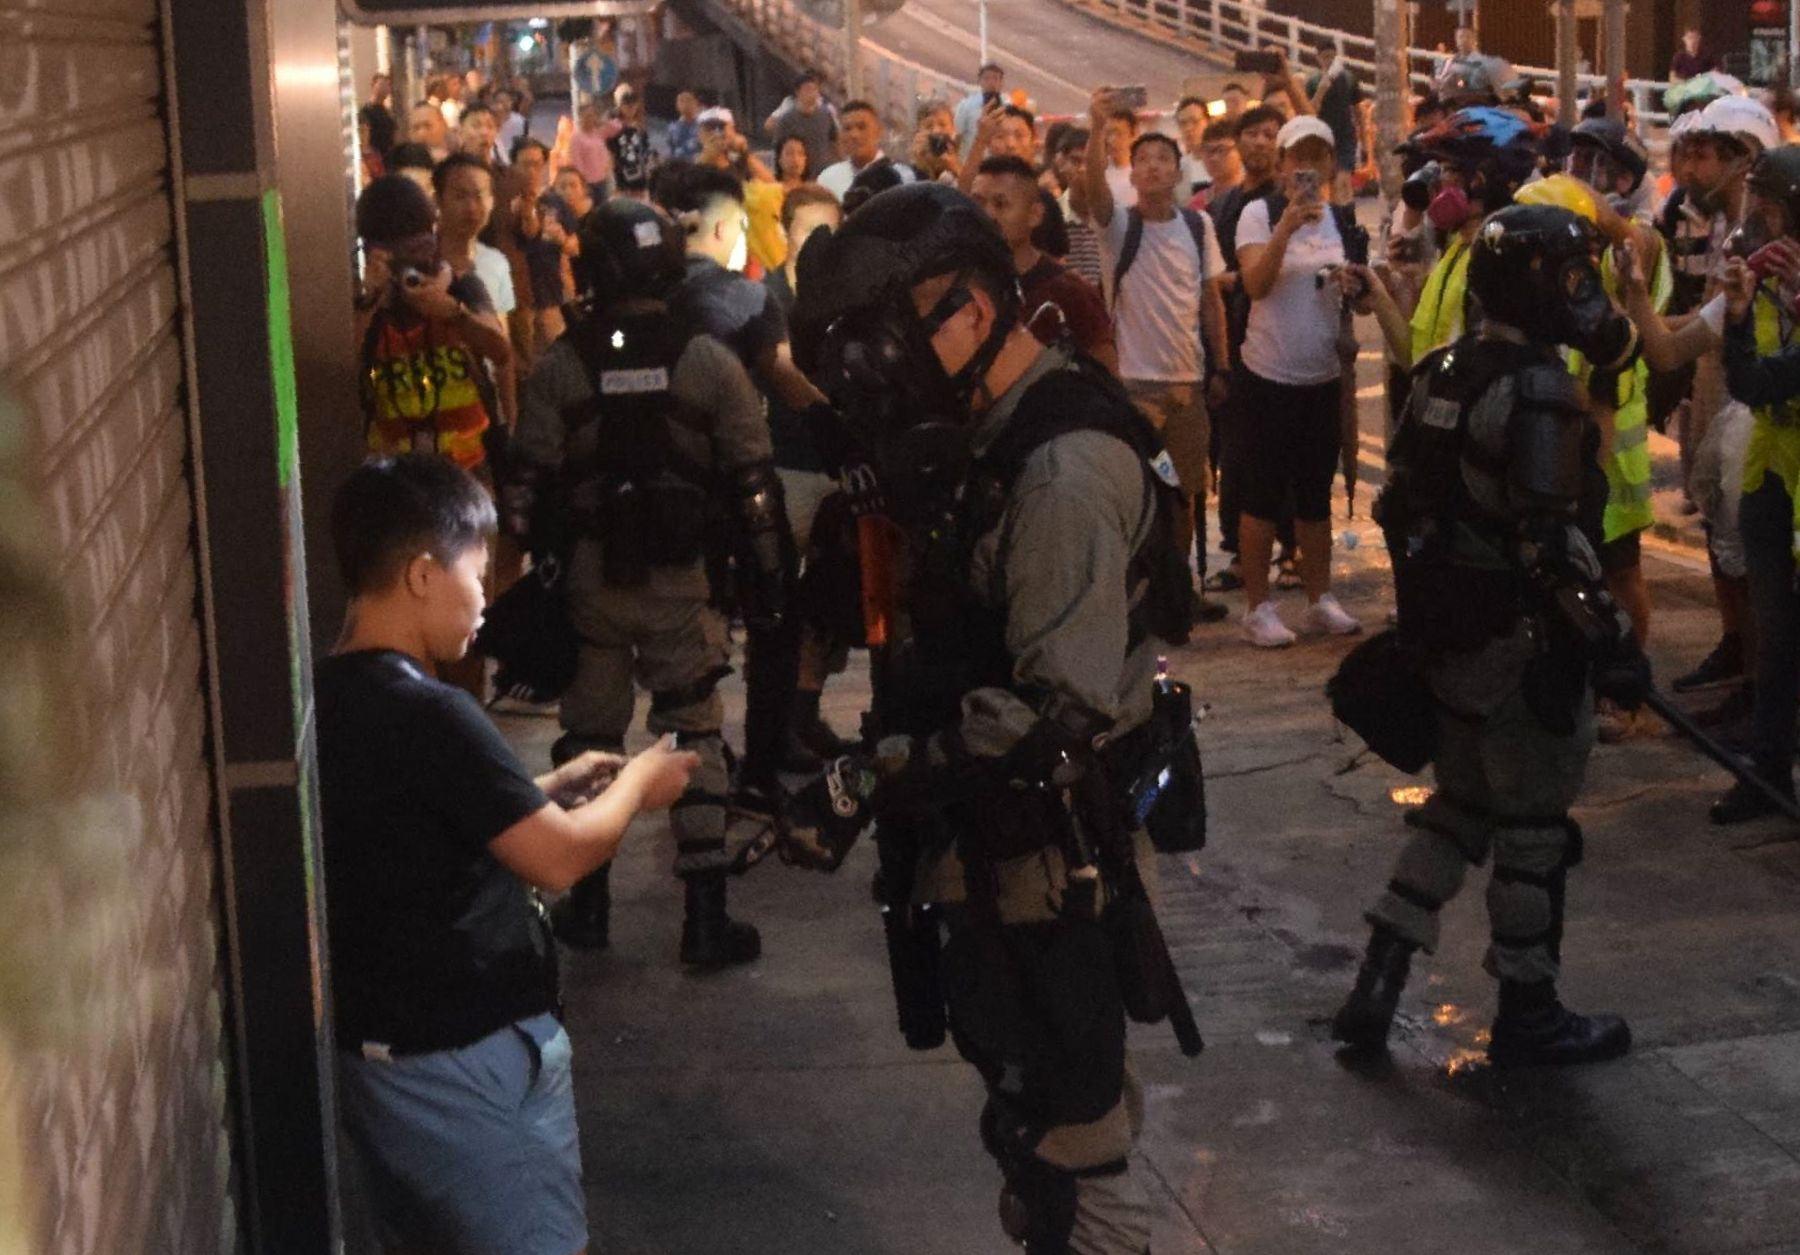 Hong Kongs Emergency Ordinance Effectively A Declaration of Martial Law 028